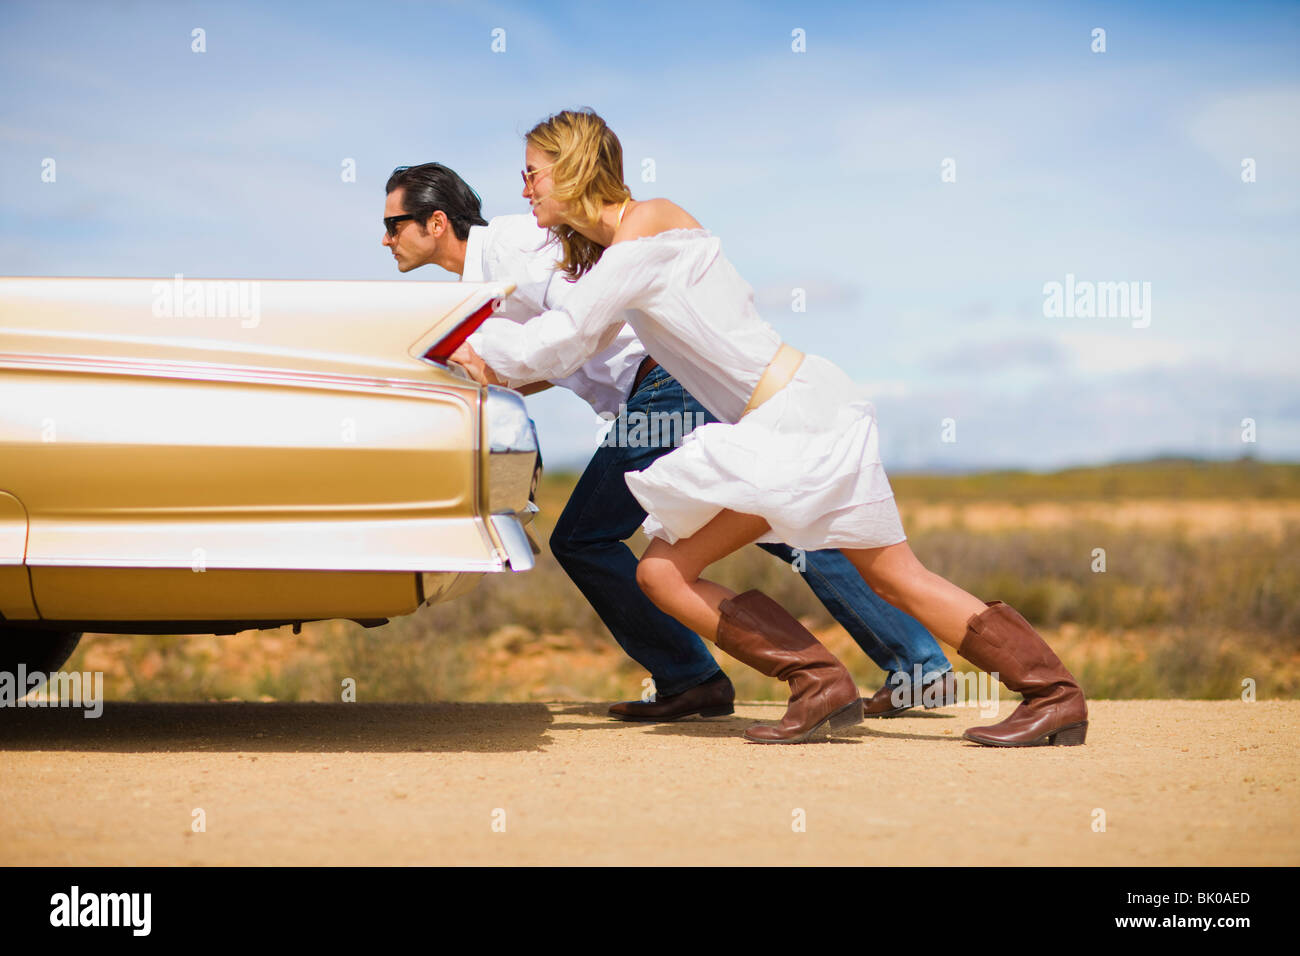 Couple pushing a car - Stock Image